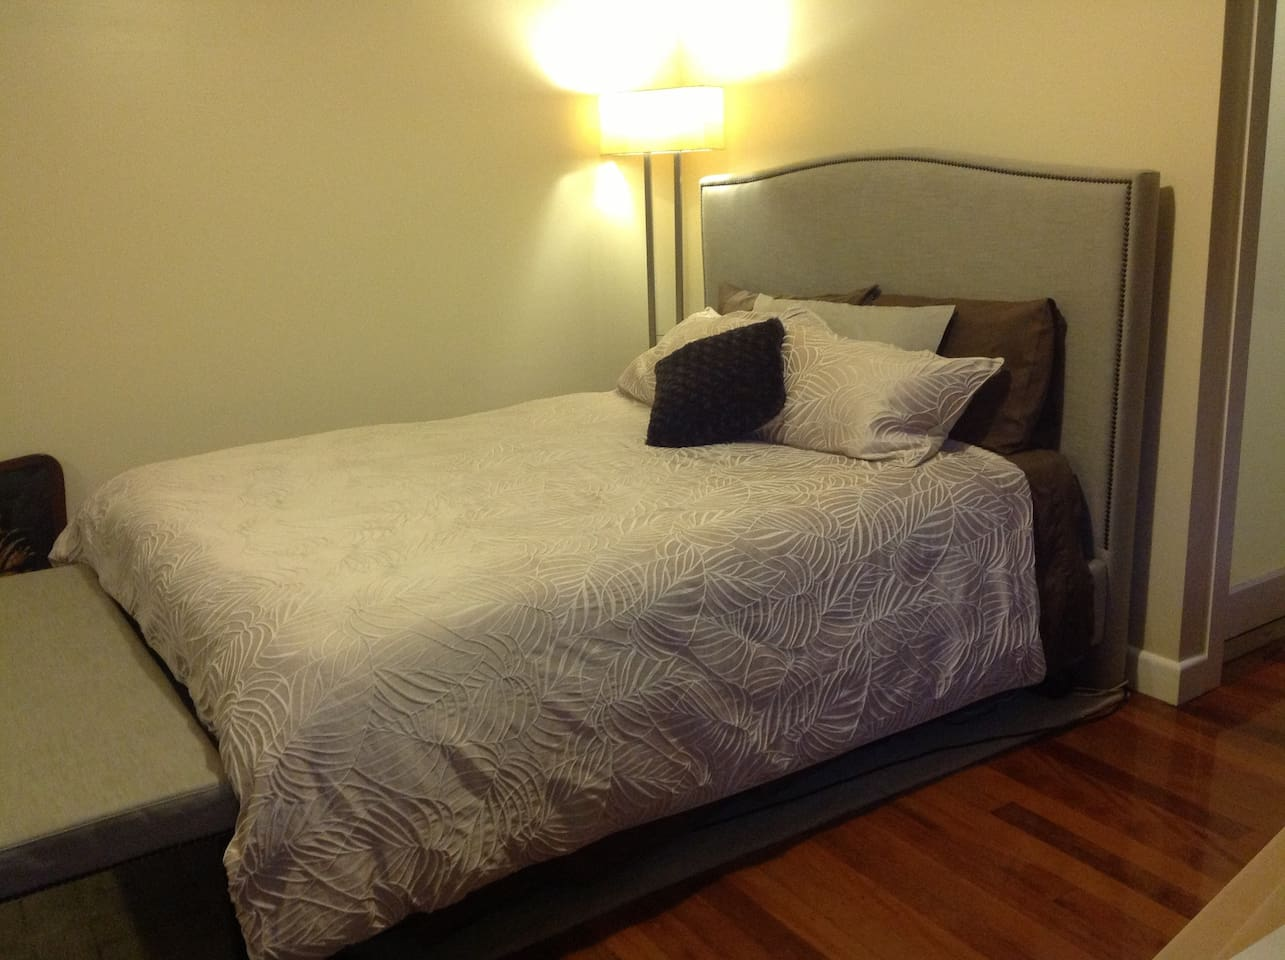 Queen bed with full support mattress and pillow choices, bathroom adjacent. One large room accommodates the sleeping, lounging, and light food preparation activities.